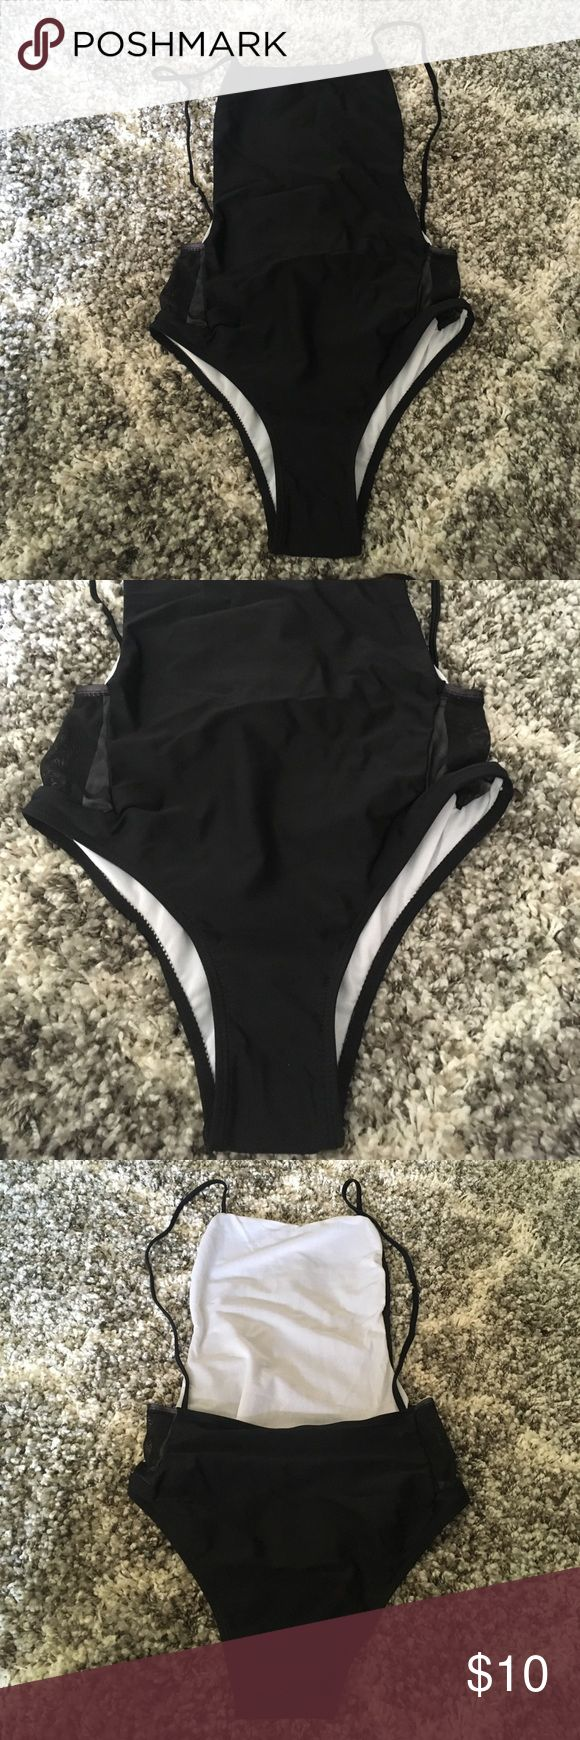 Open back one piece swimsuit Black one piece swimsuit with mesh sides at hip and square neck. Open back. Size large but for a petite build. Large chest not recommended Boohoo Swim One Pieces